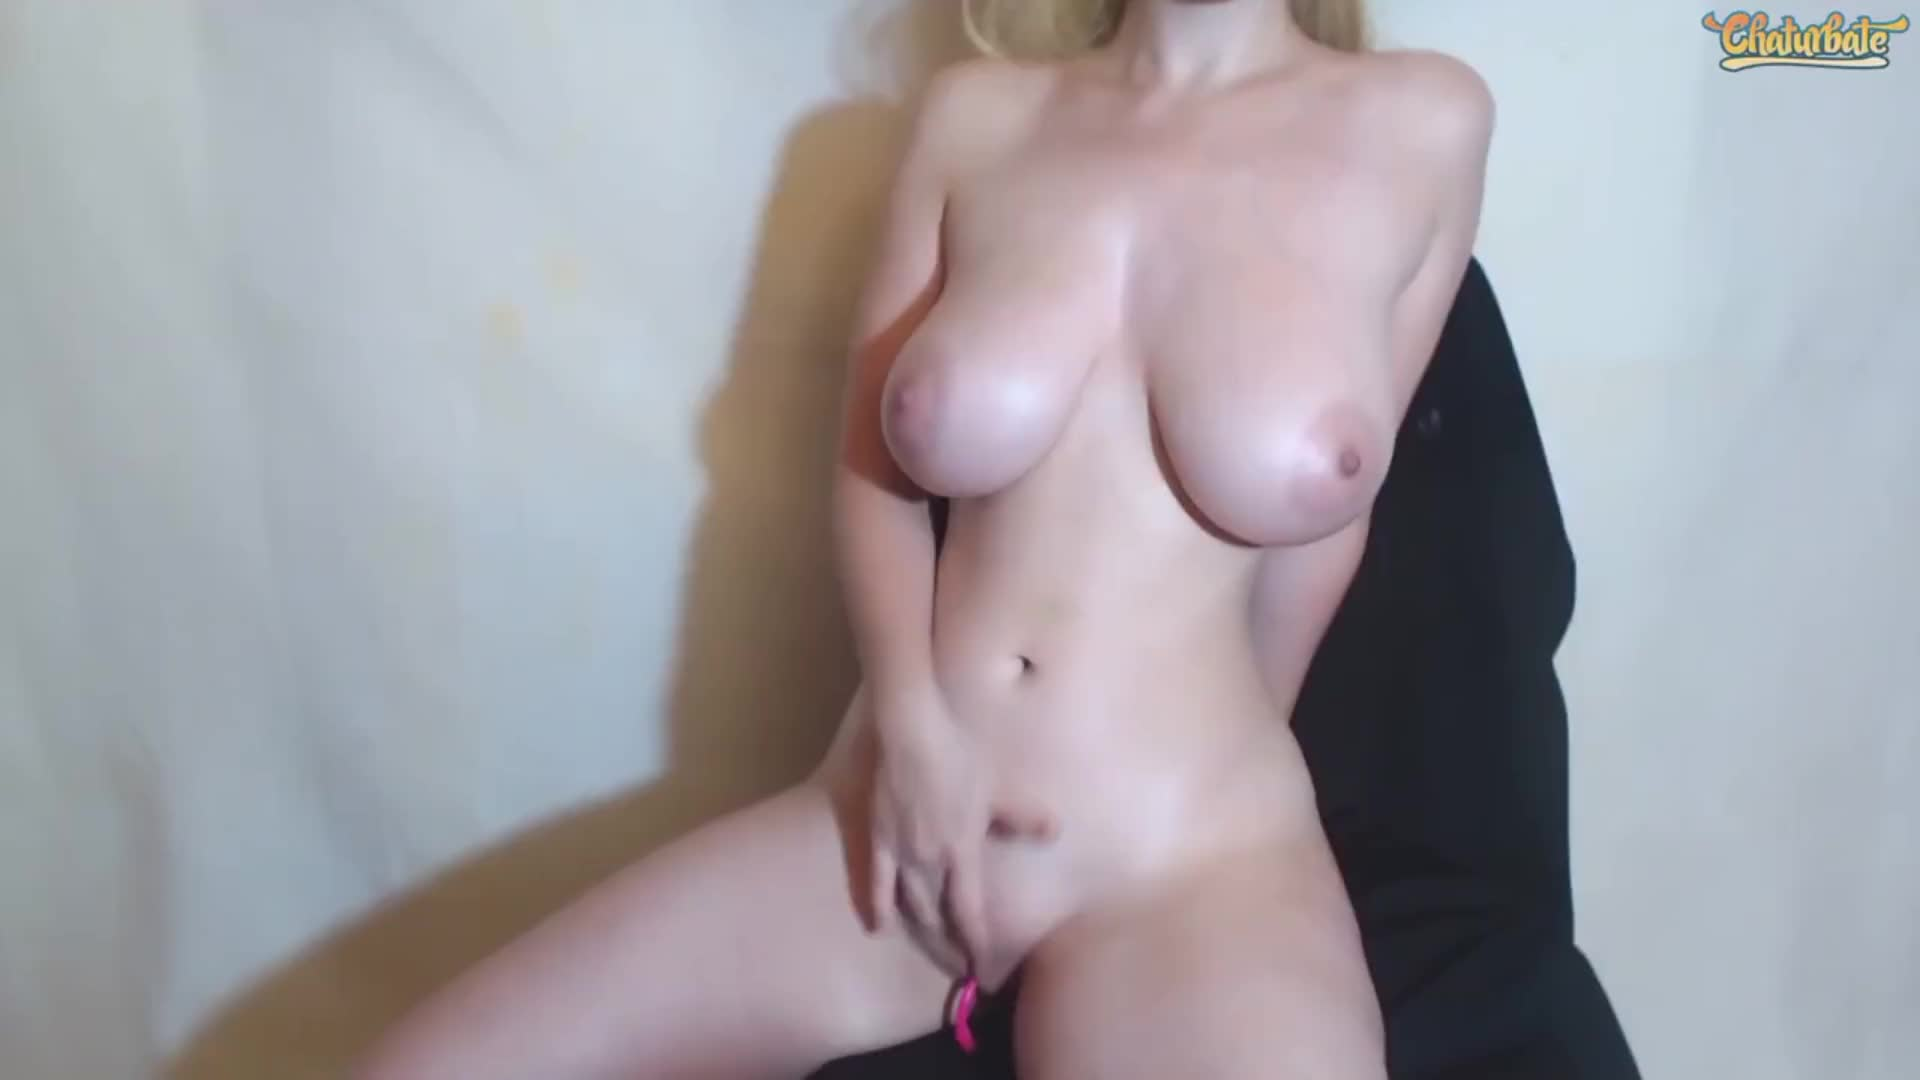 Sweet Camgirl with PERFECT BIG TITS (Must-Watch)